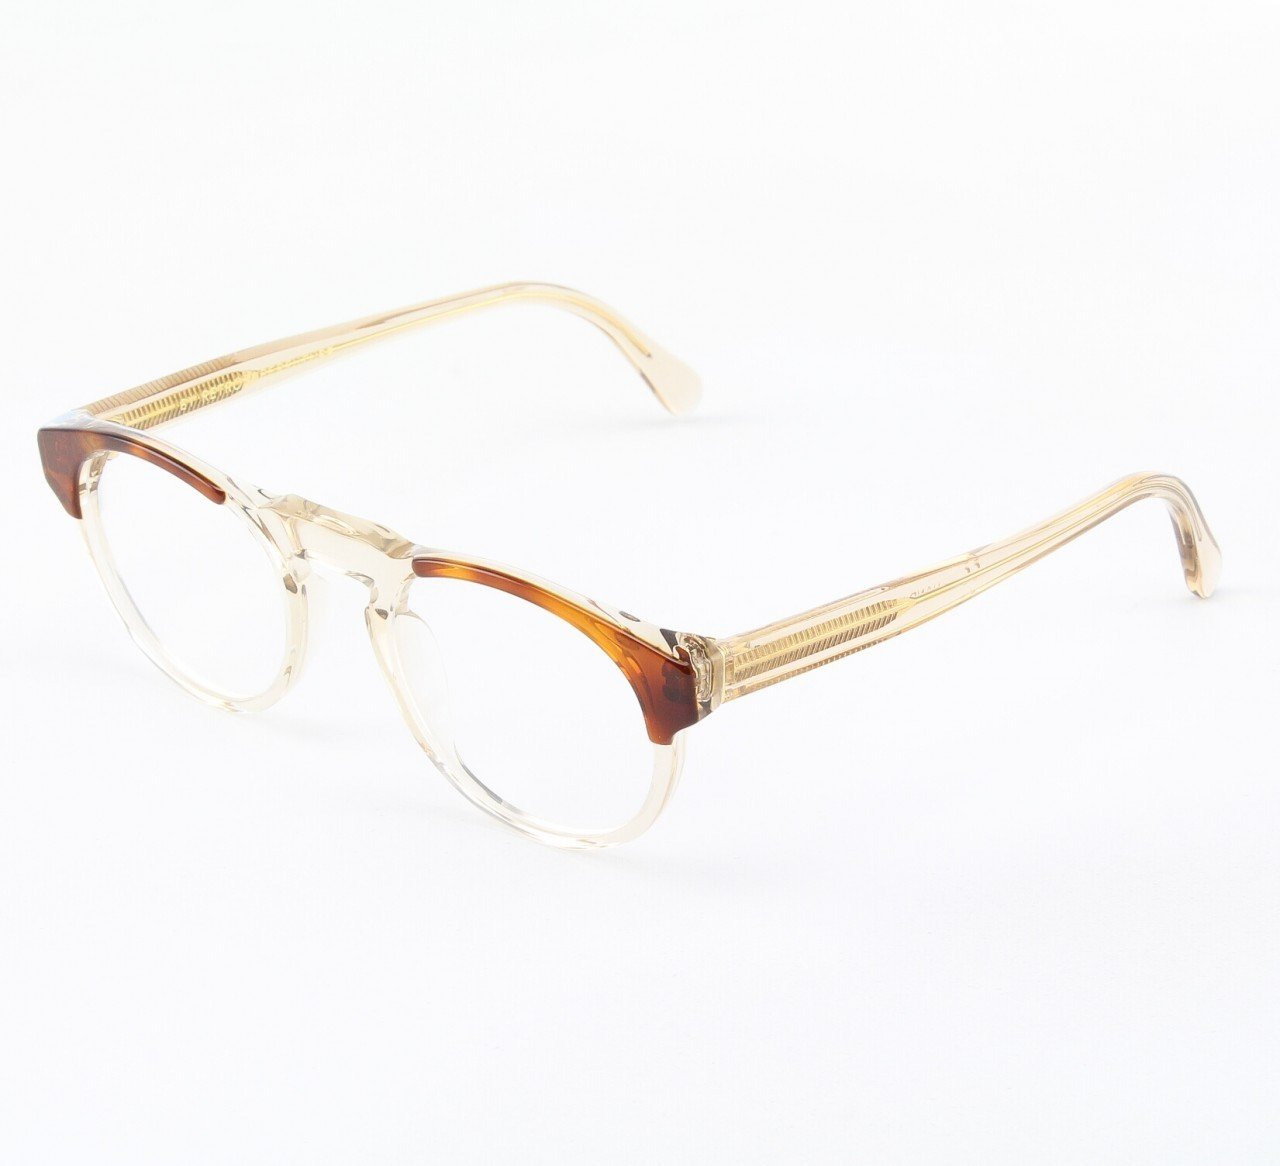 Super Paloma 961/0T Eyeglasses Brown with Clear Zeiss Lenses by RETROSUPERFUTURE